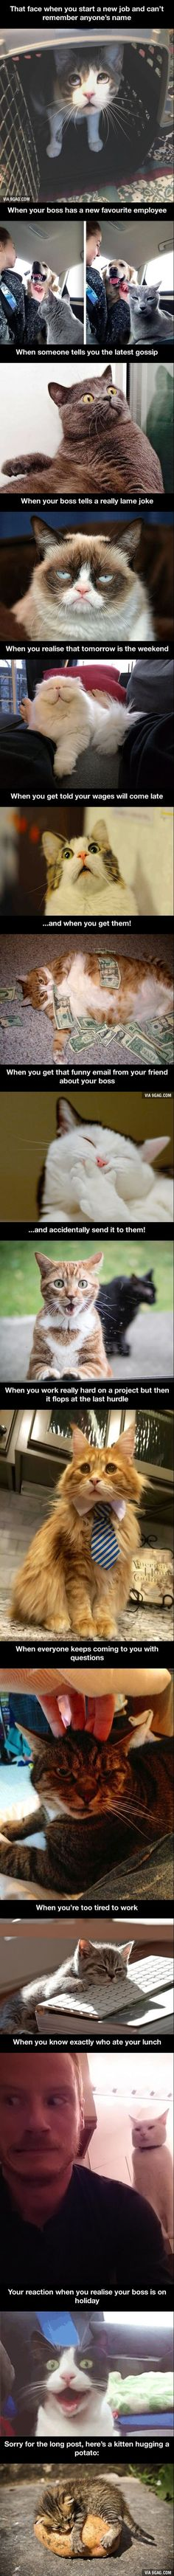 THIS IS THE CUTEST THING Cat Pinterest Animal Cat And - 16 funniest cat tweets 2016